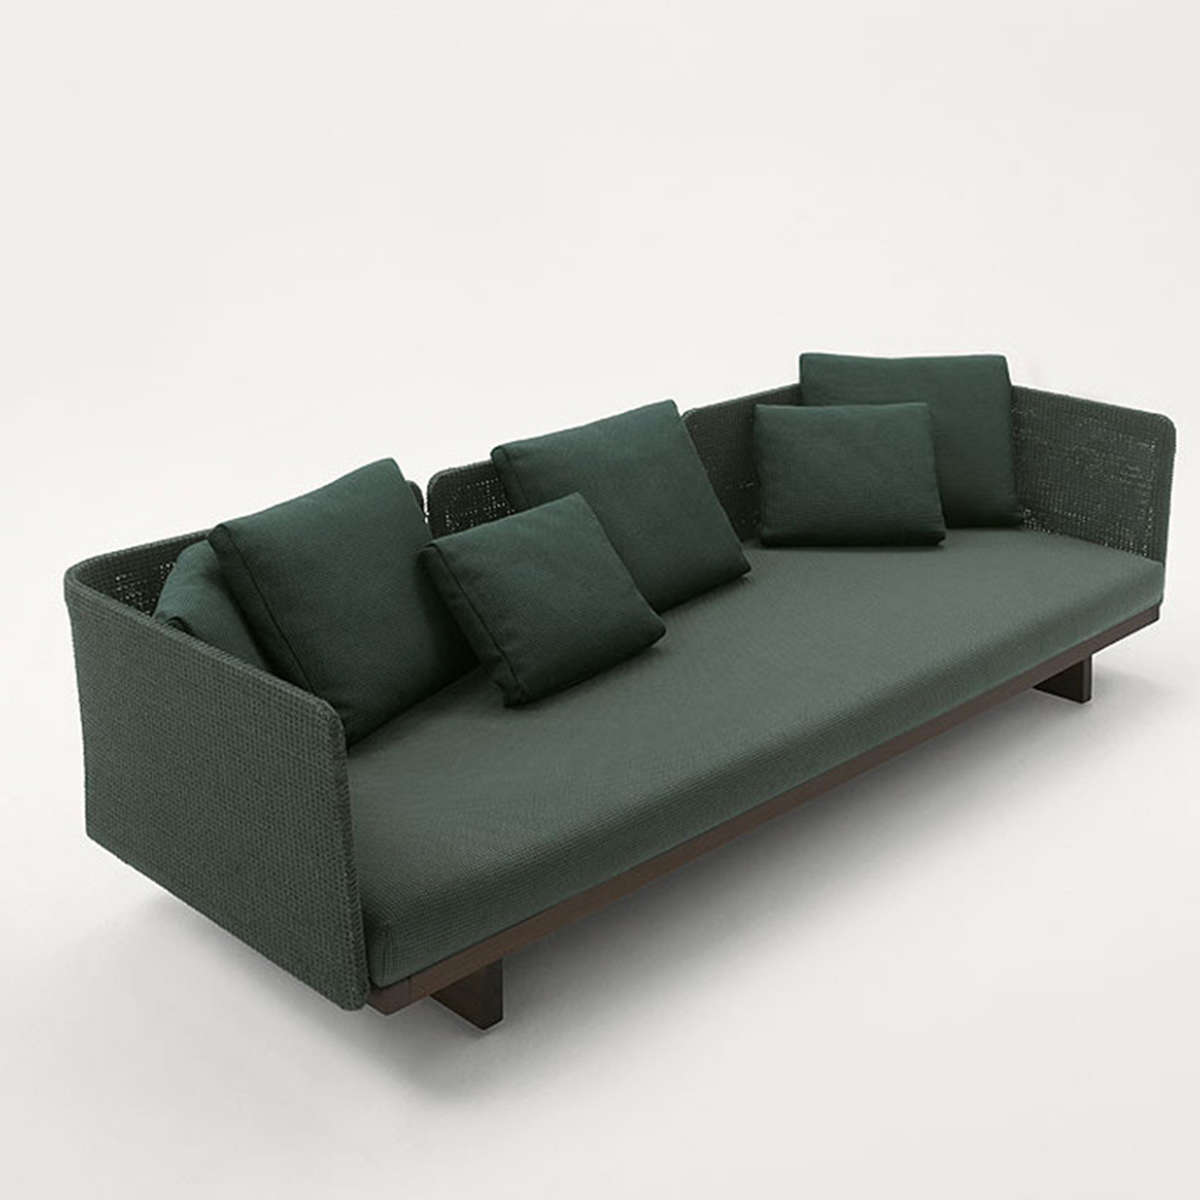 Sabi Sofa Studio Green